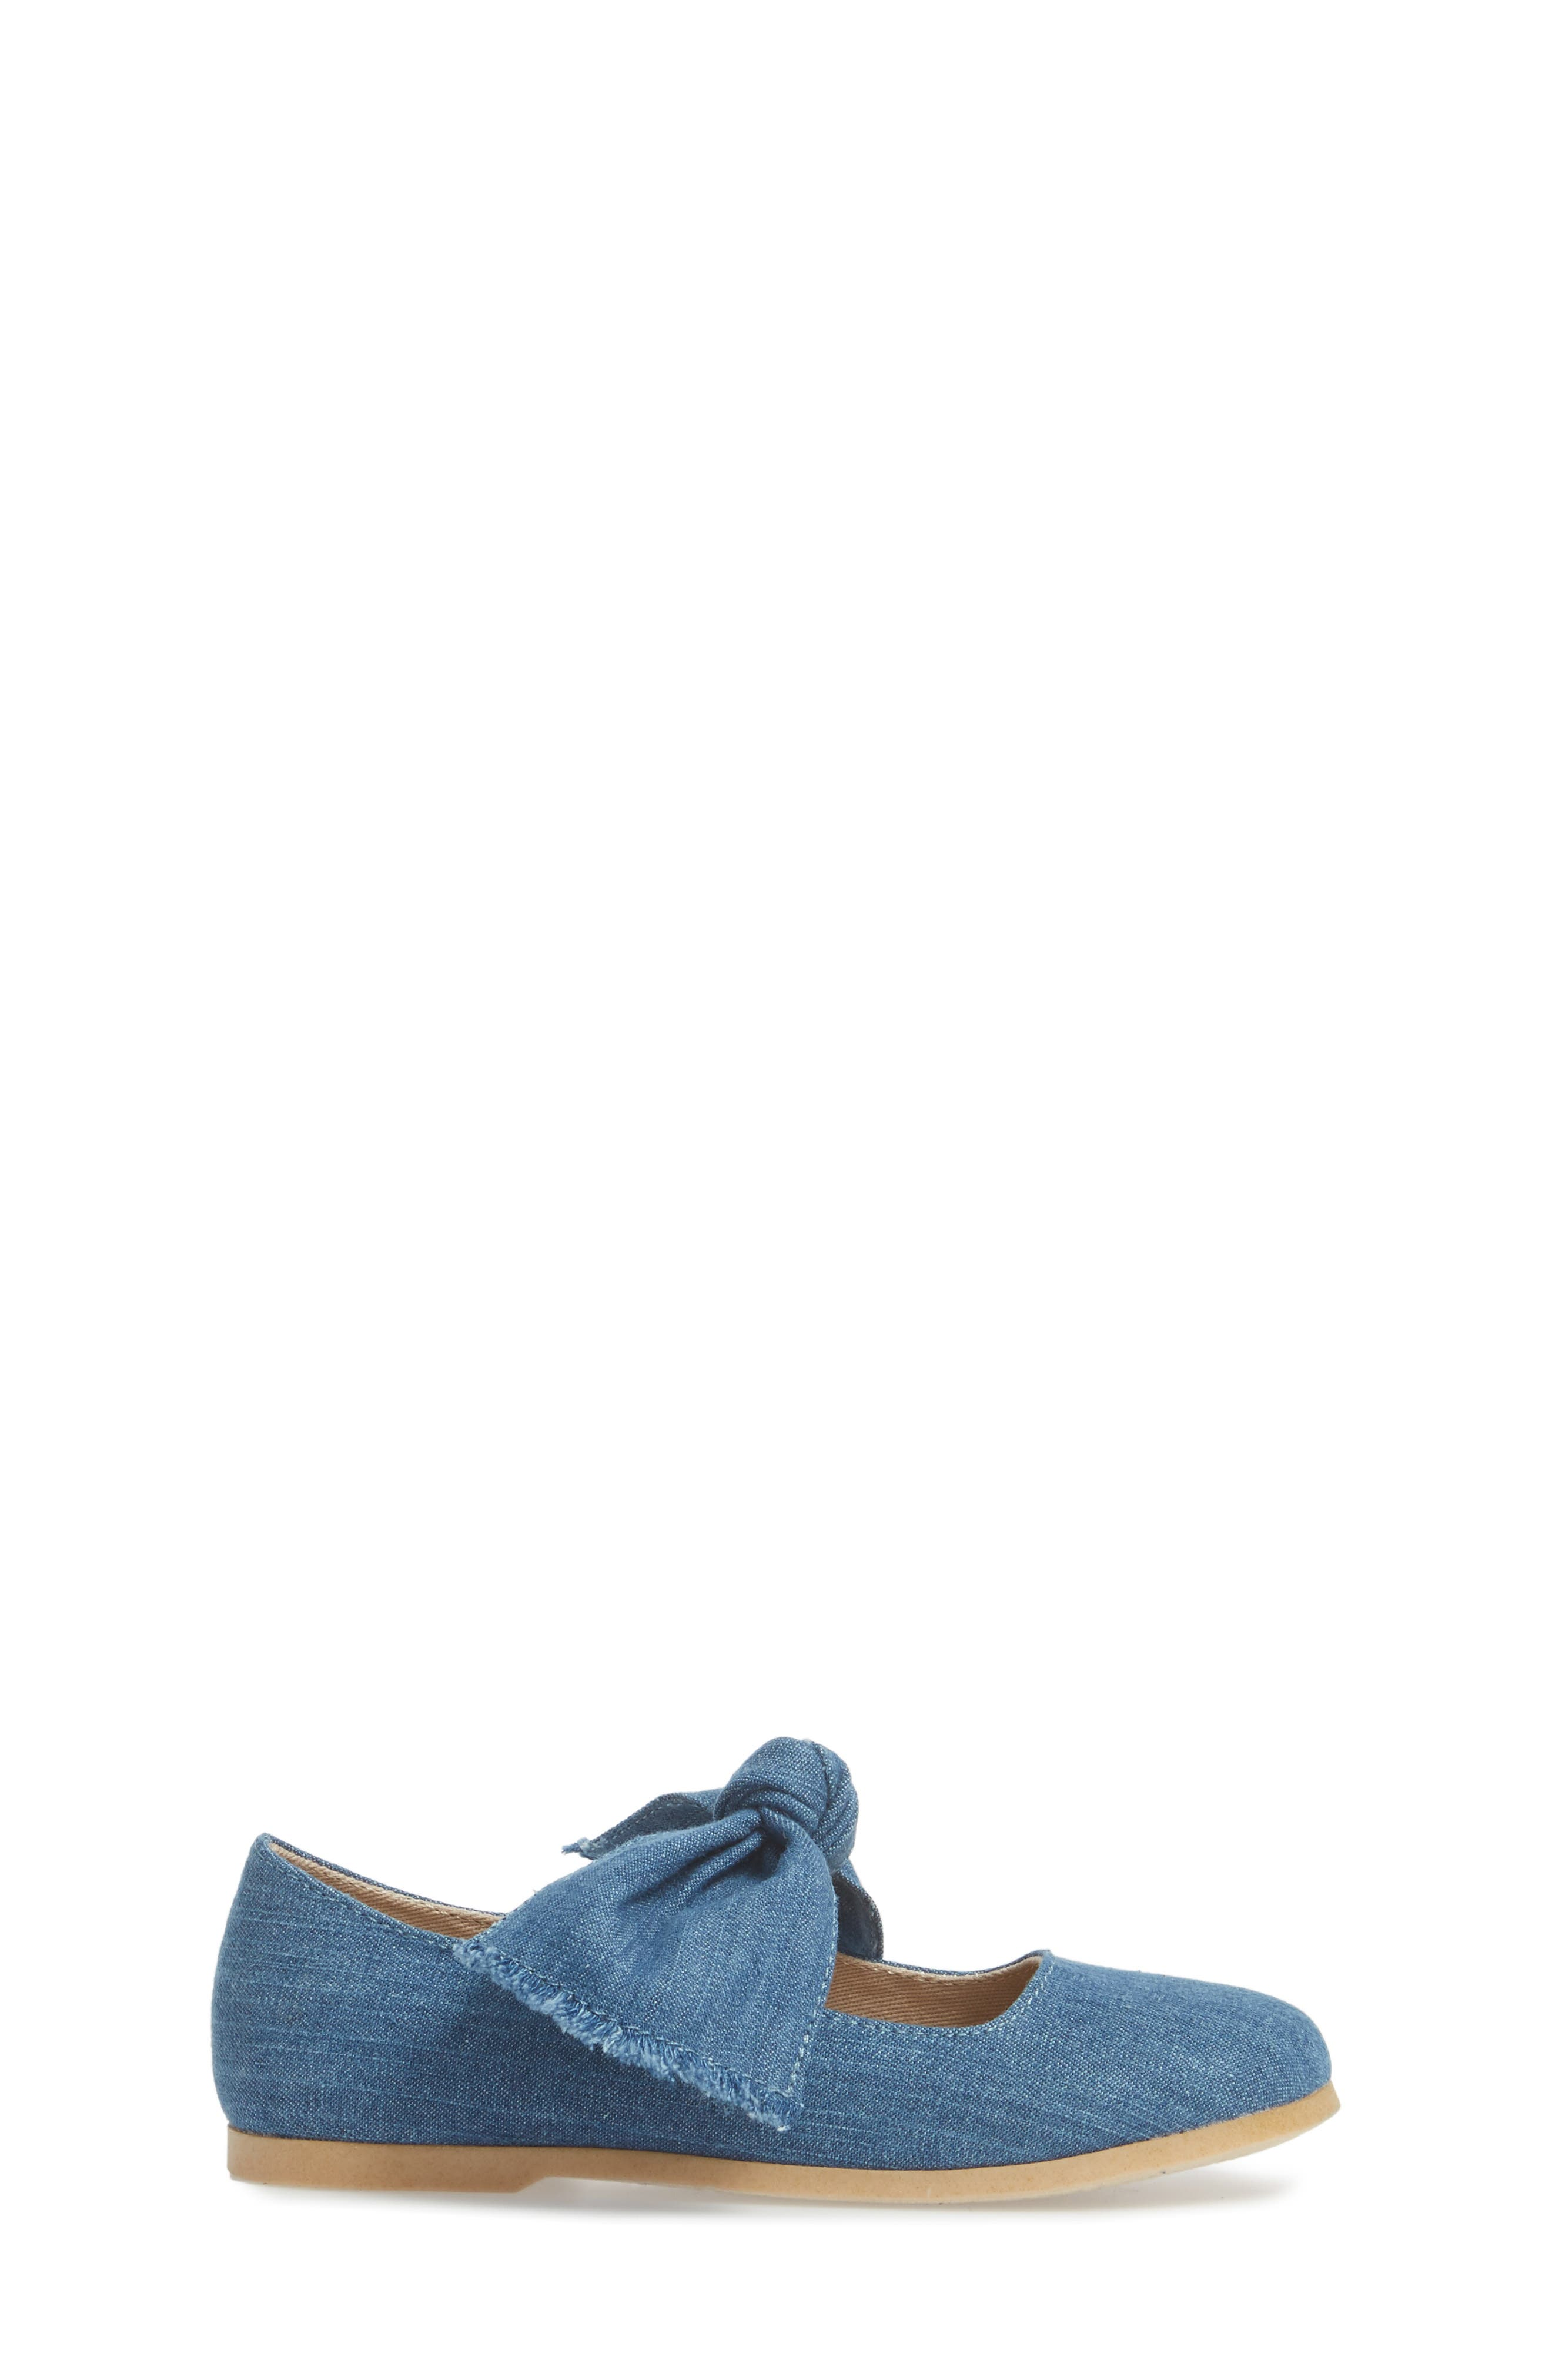 Helina Bow Mary Jane Flat,                             Alternate thumbnail 3, color,                             Chambray Fabric